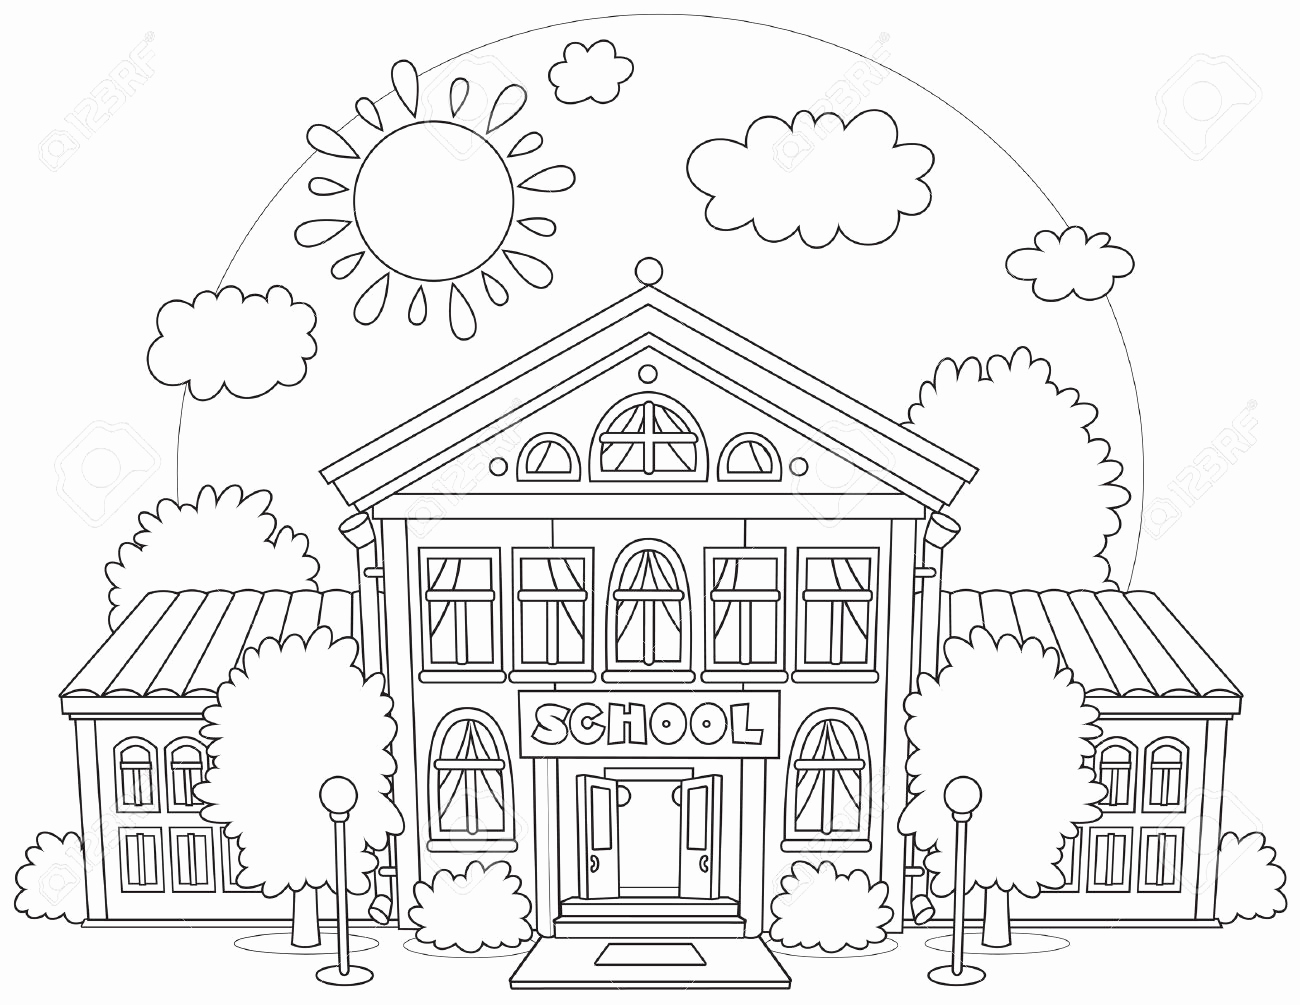 Apartment Building Coloring Page at GetColorings.com